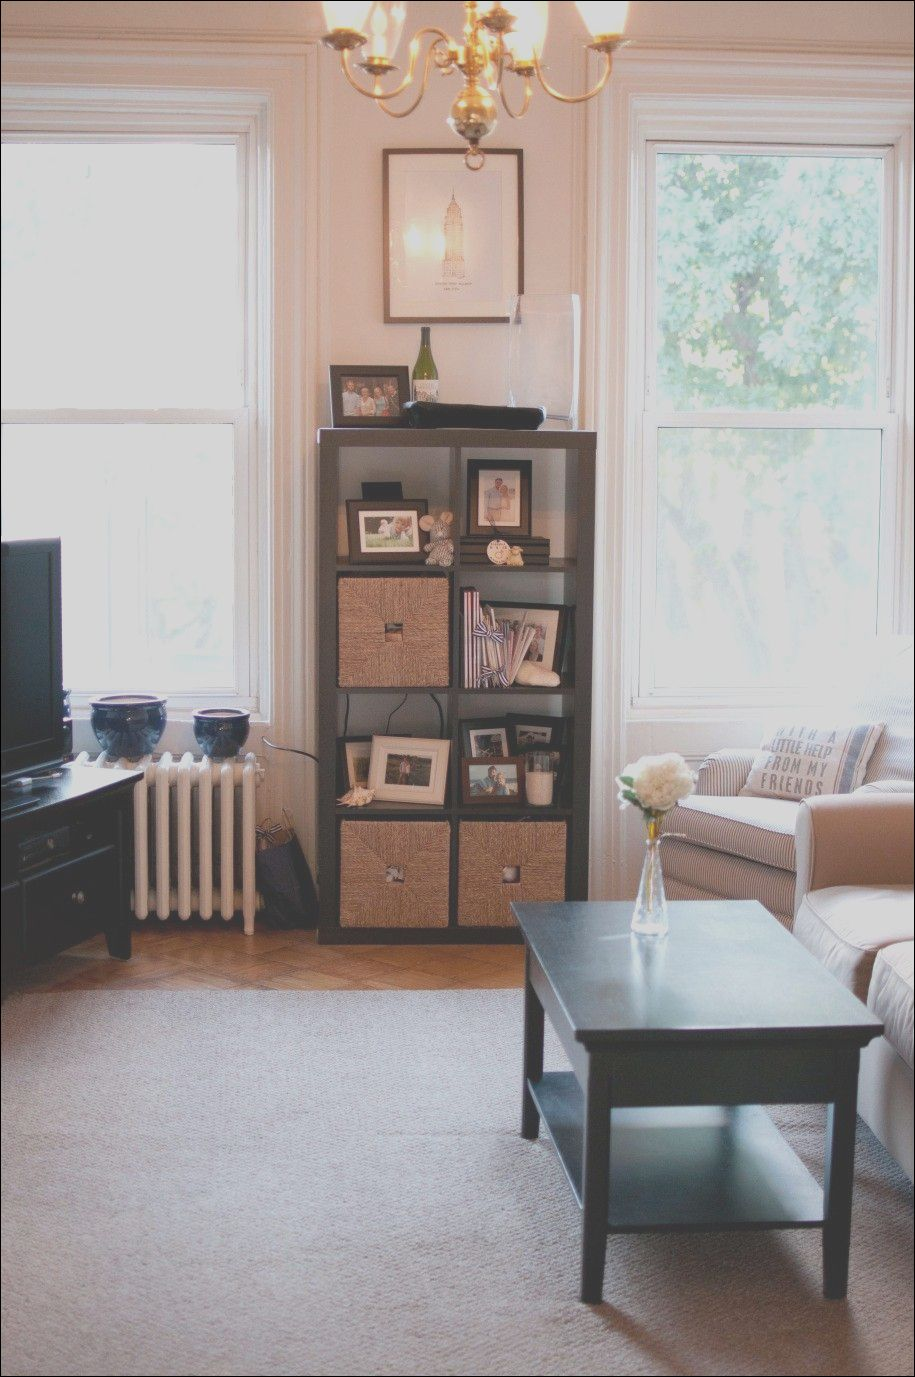 10 Pretty College Apartment Decorations Images In 2020 Col